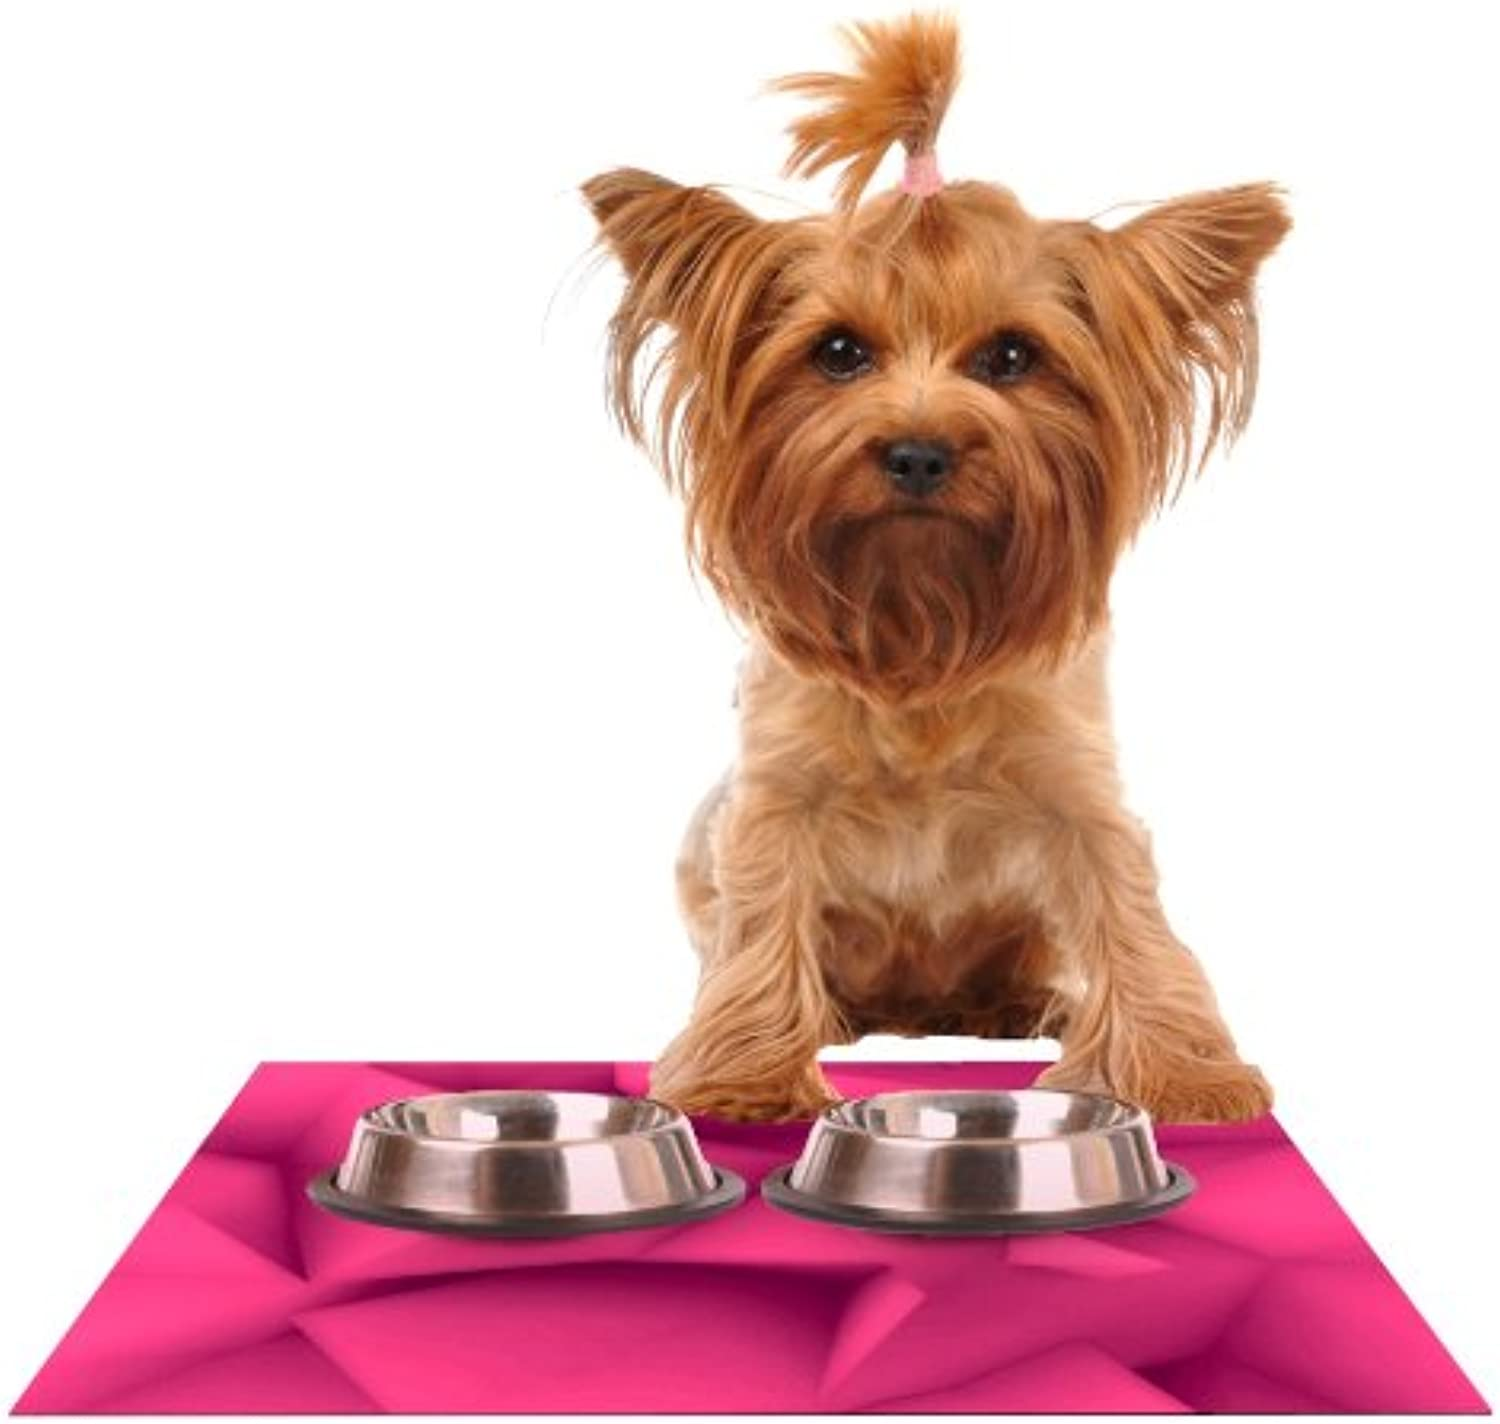 Kess InHouse Danny Ivan Purple Surface Feeding Mat for Pet Bowl, 18 by 13Inch